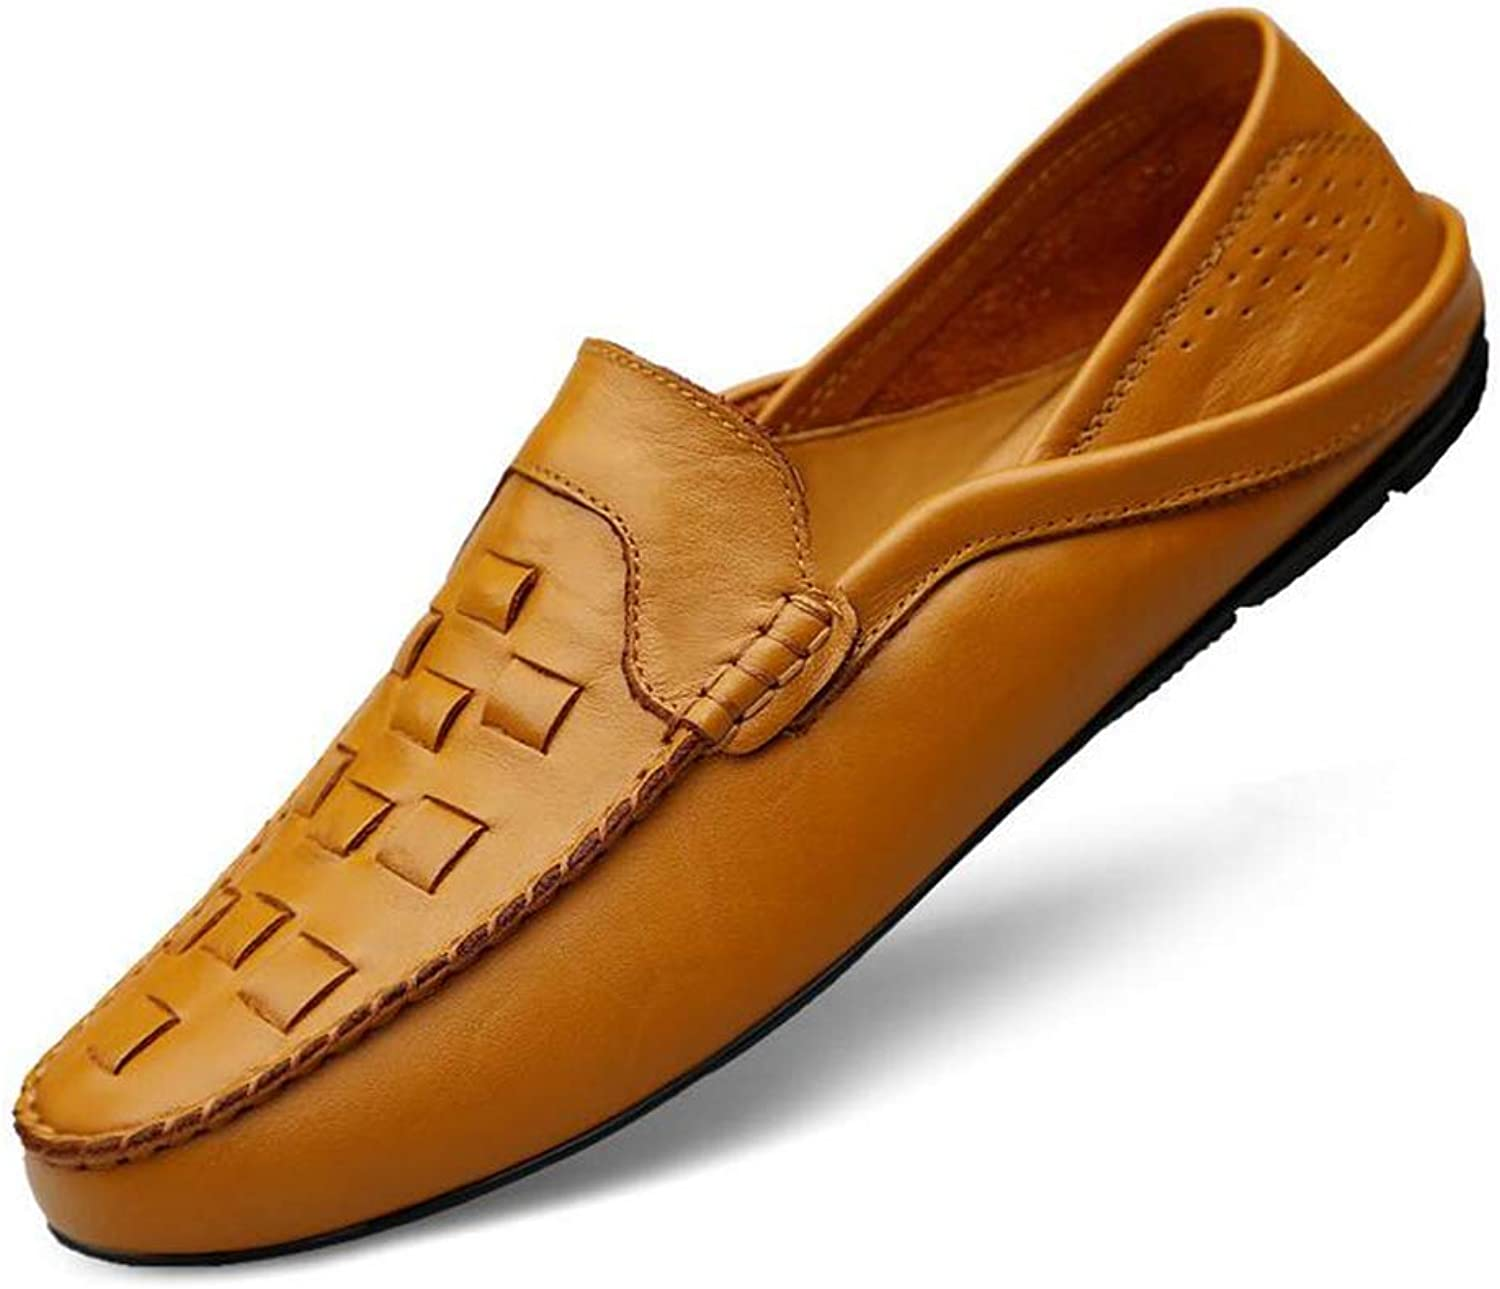 Y-H Mens Leather shoes, Spring Fall Casual shoes, Loafers & Slip-Ons Lazy shoes Peas shoes,Flat Comfort Driving shoes (color   B, Size   40)